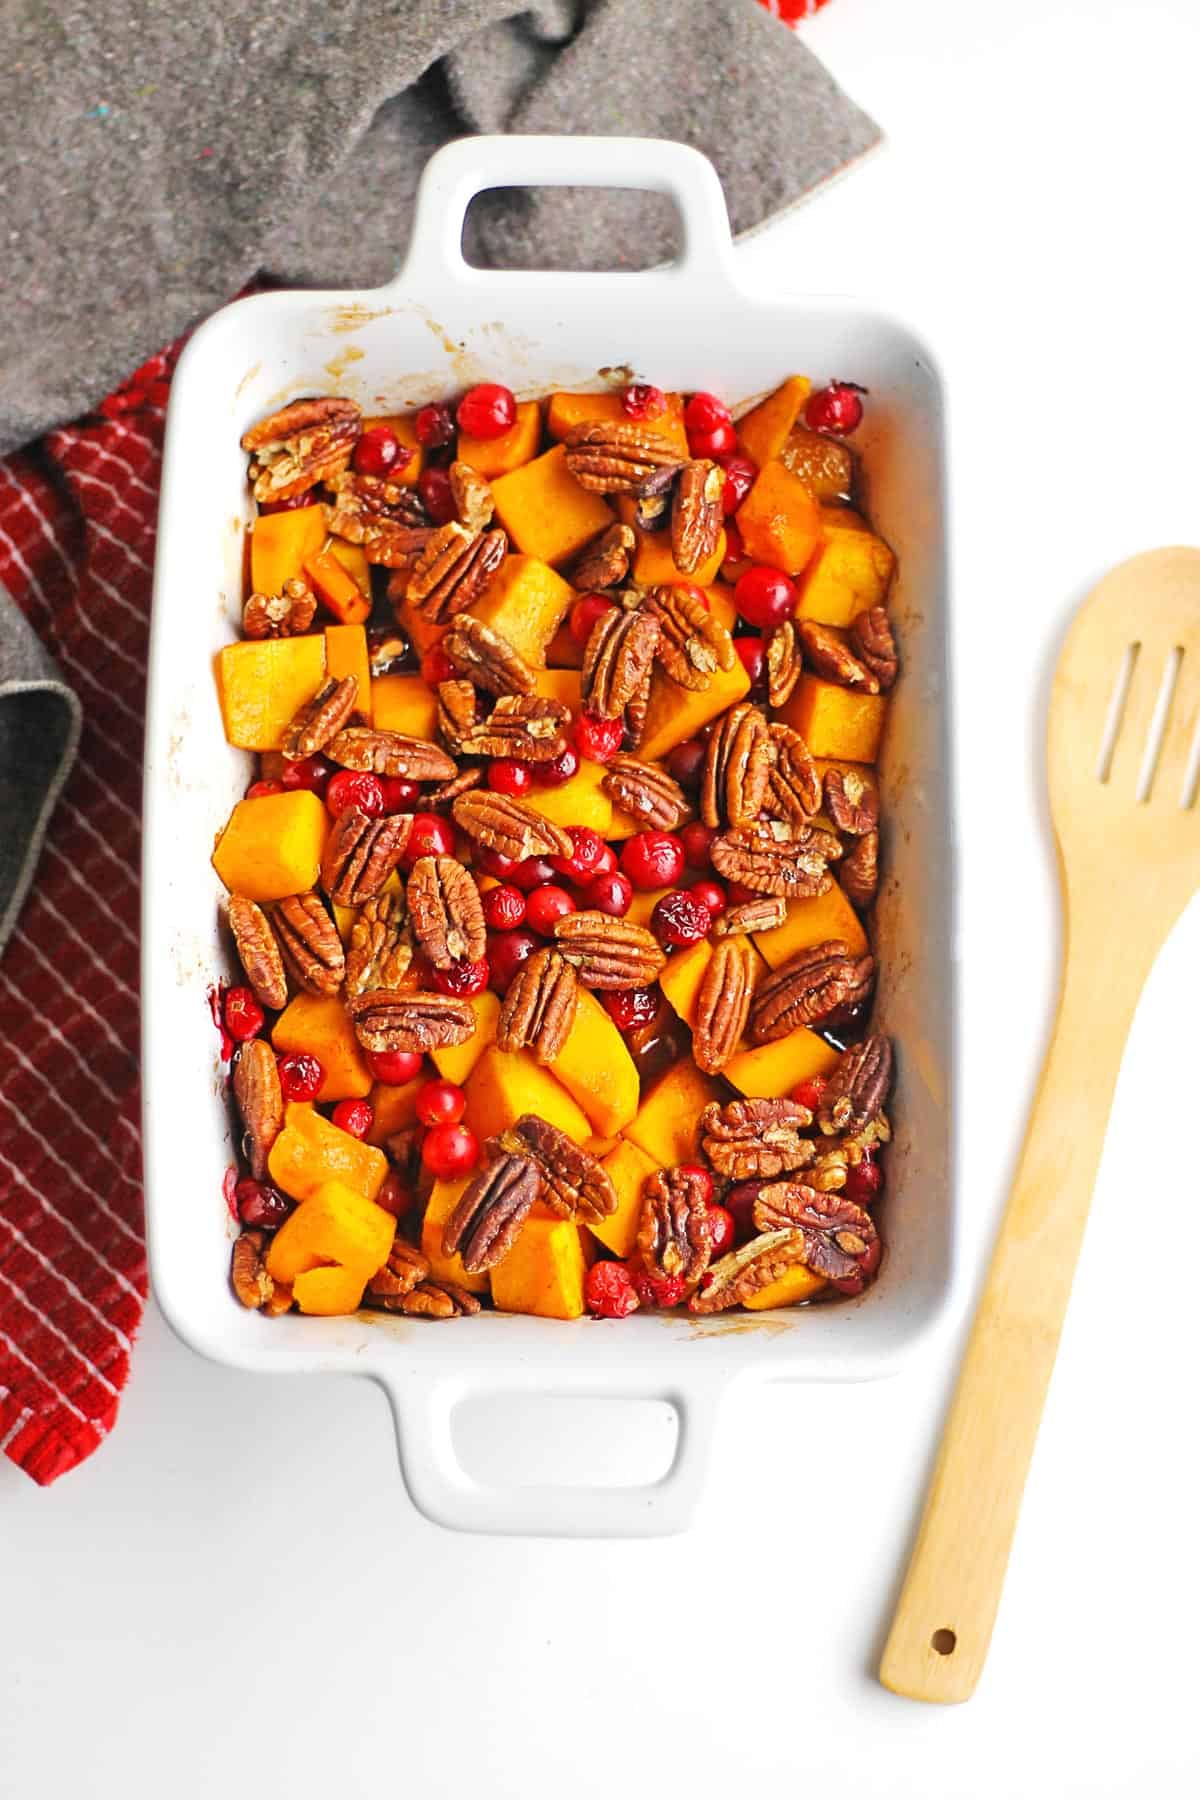 Roasted butternut squash with cranberries and pecans in a white pan